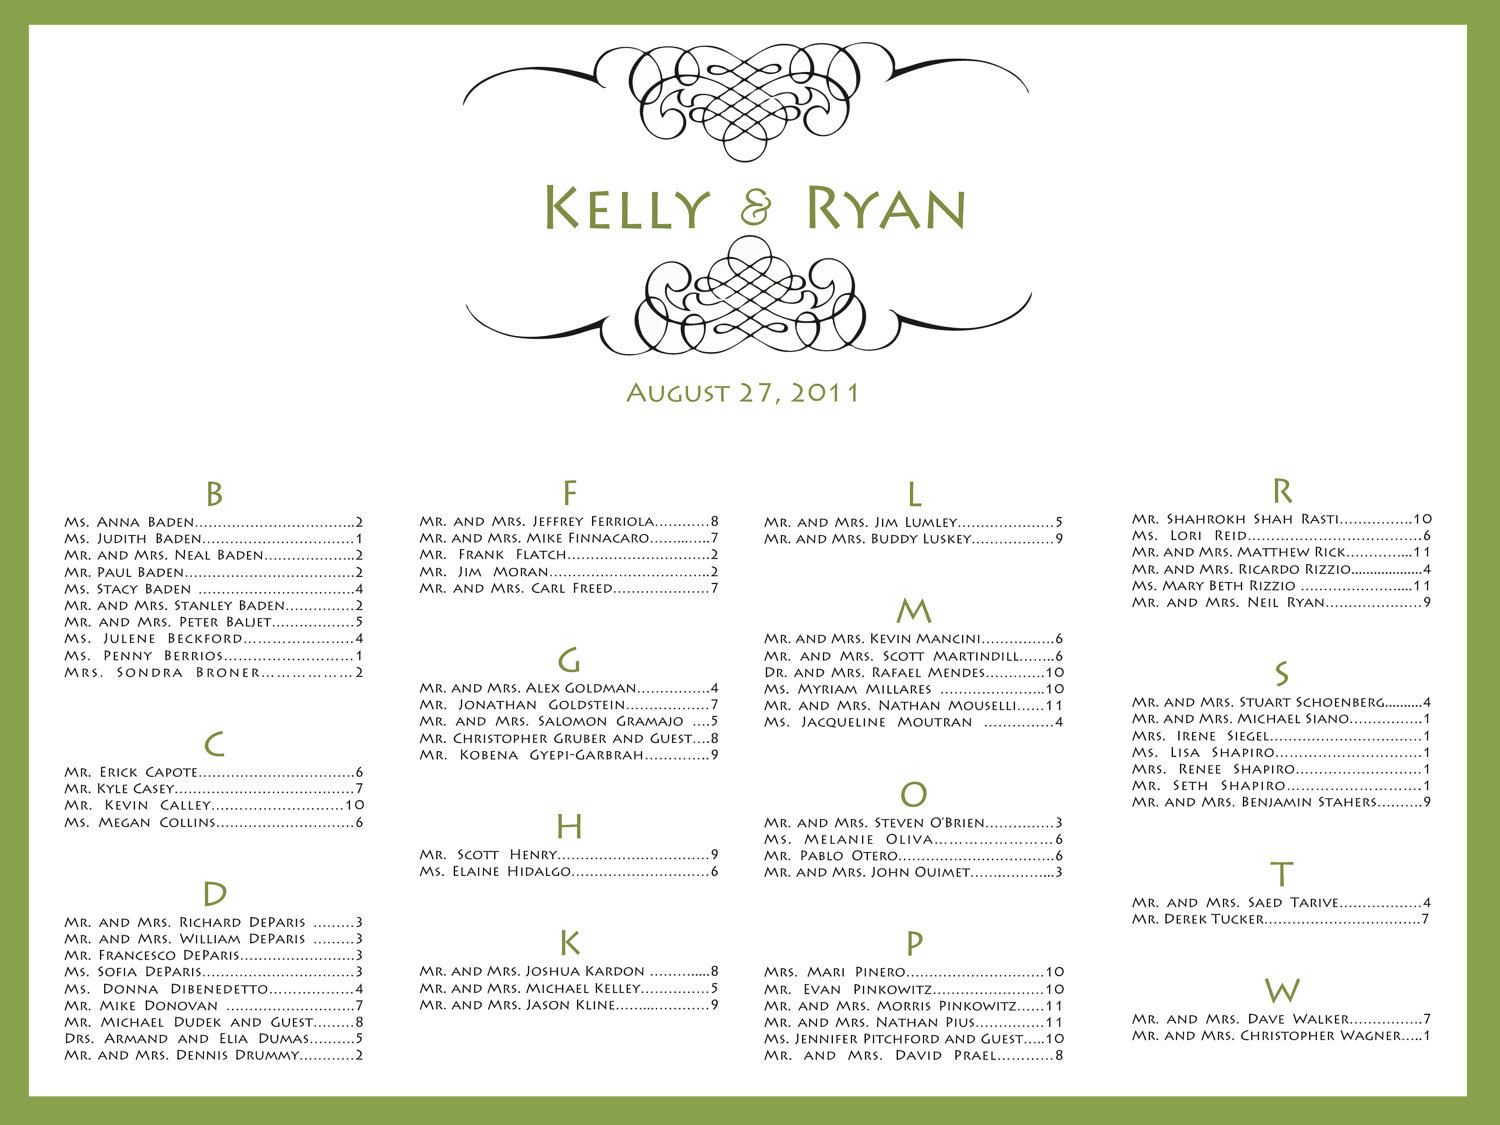 Floral Seating Chart Poster Boho Seating Chart Sign Etsy Seating Chart Wedding Seating Charts Wedding Printables Rehearsal dinner seating chart template